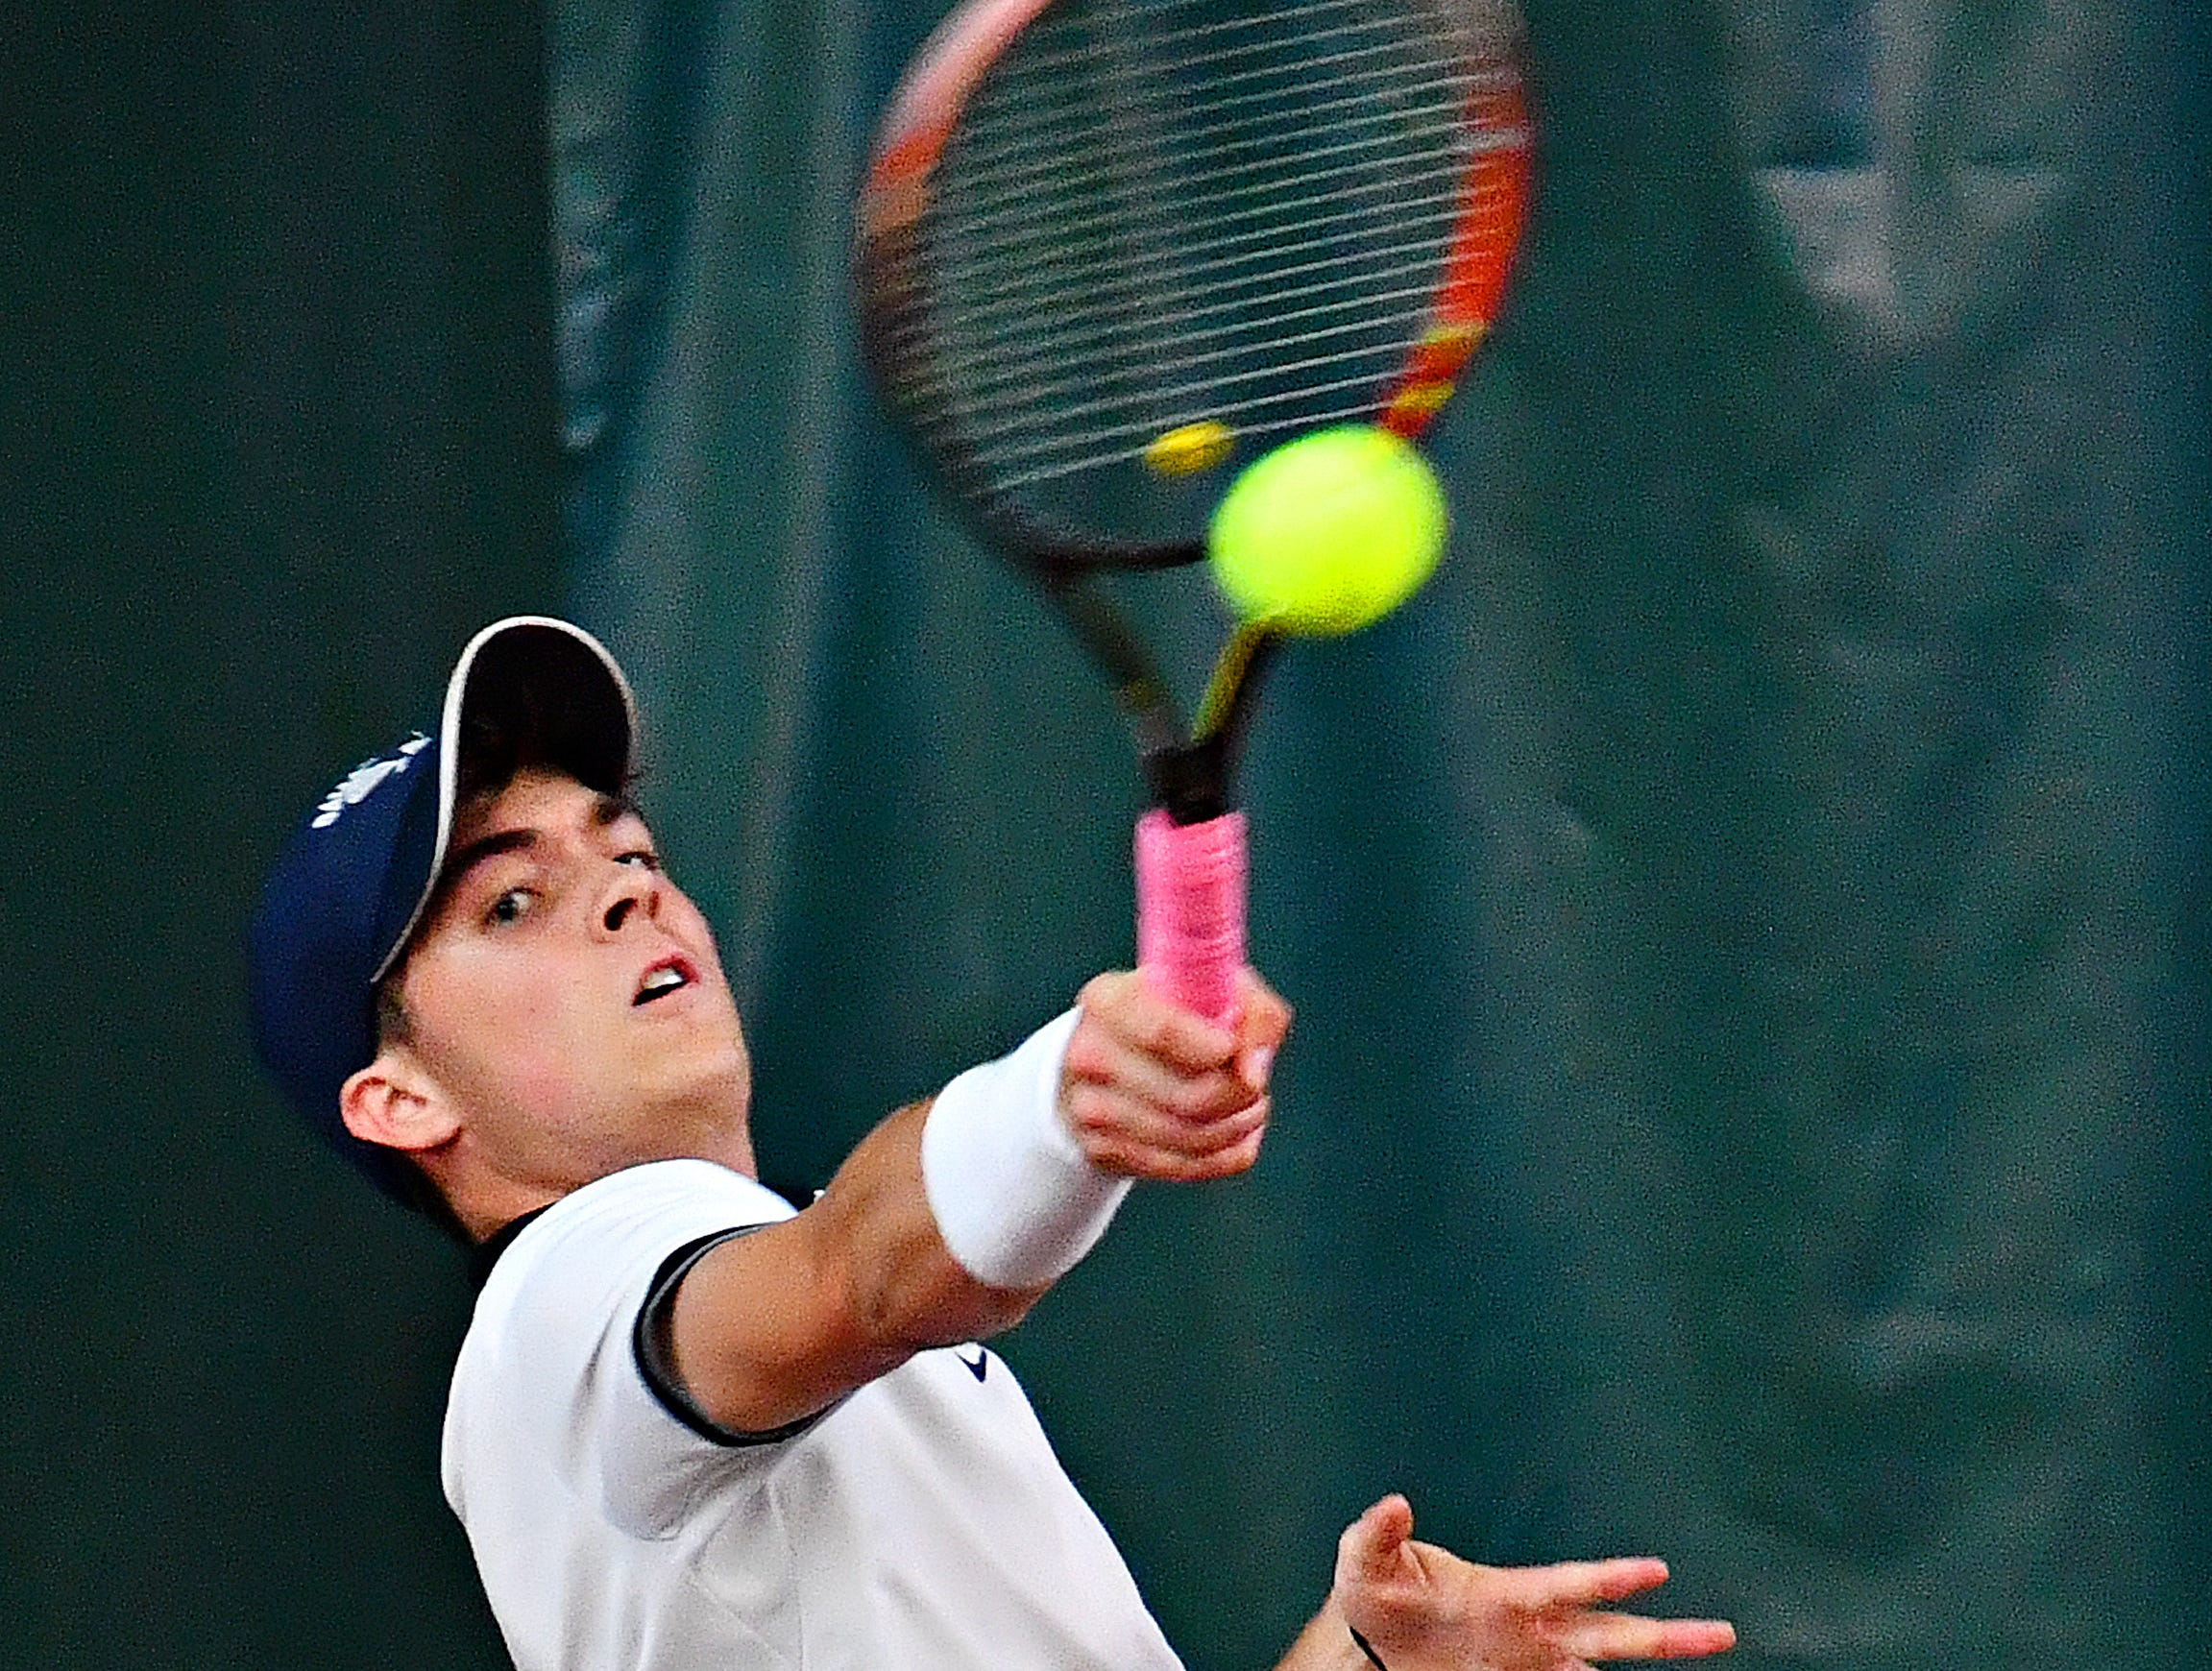 Dallastown's Sebastian May returns the ball to Hershey's Anthony Eichman during District III, Class 3-A boys' tennis team championship action at Hershey Raquet Club in Hershey, Thursday, May 9, 2019. Eichman would win the match and Hershey would win the title. Dawn J. Sagert photo